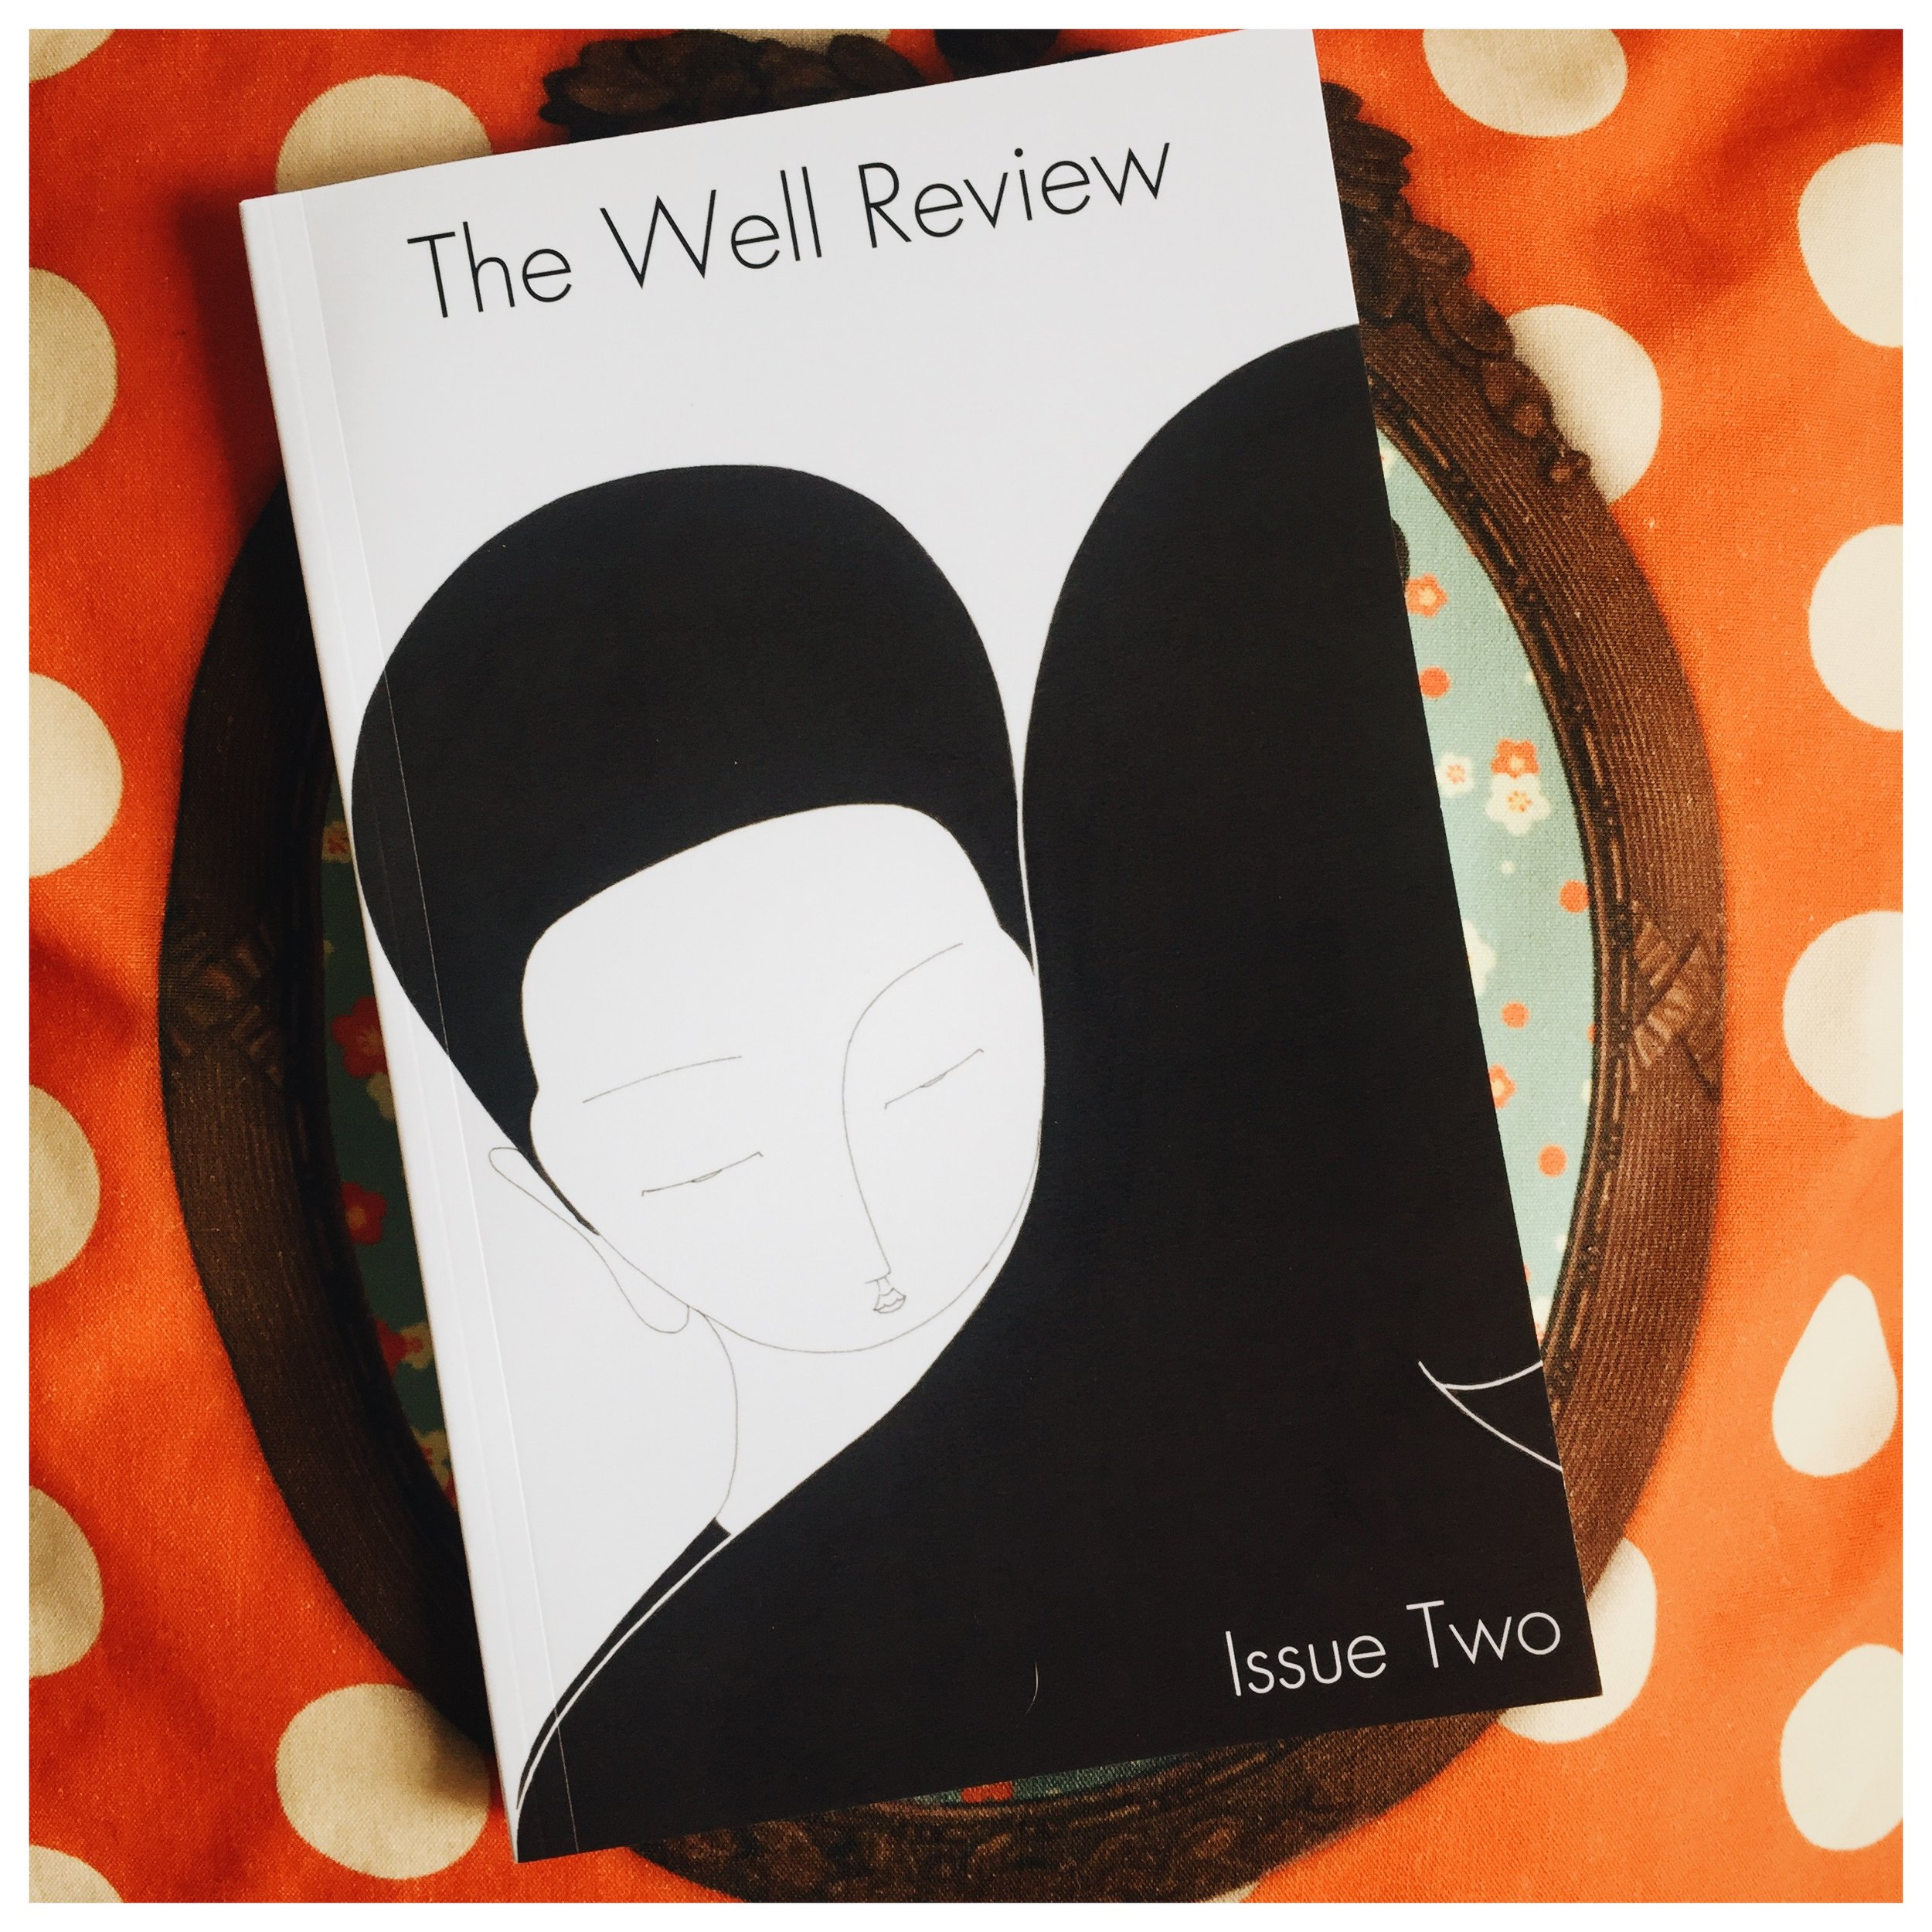 I finally got my hands on the much-anticipated Issue Two of The Well Review. So chuffed to have my name associated with it. I had the great good fortune of spending a week in Bantry with Sarah & Christian, playing a teeny part in its production. It was such labour of love for that brilliant creative pair. There are poems by the likes of Leontia Flynn, Vona Groarke, and Matthew Sweeney. Especially proud to see the talented Gabriella Attems in there. Massive congrats, and hats off!